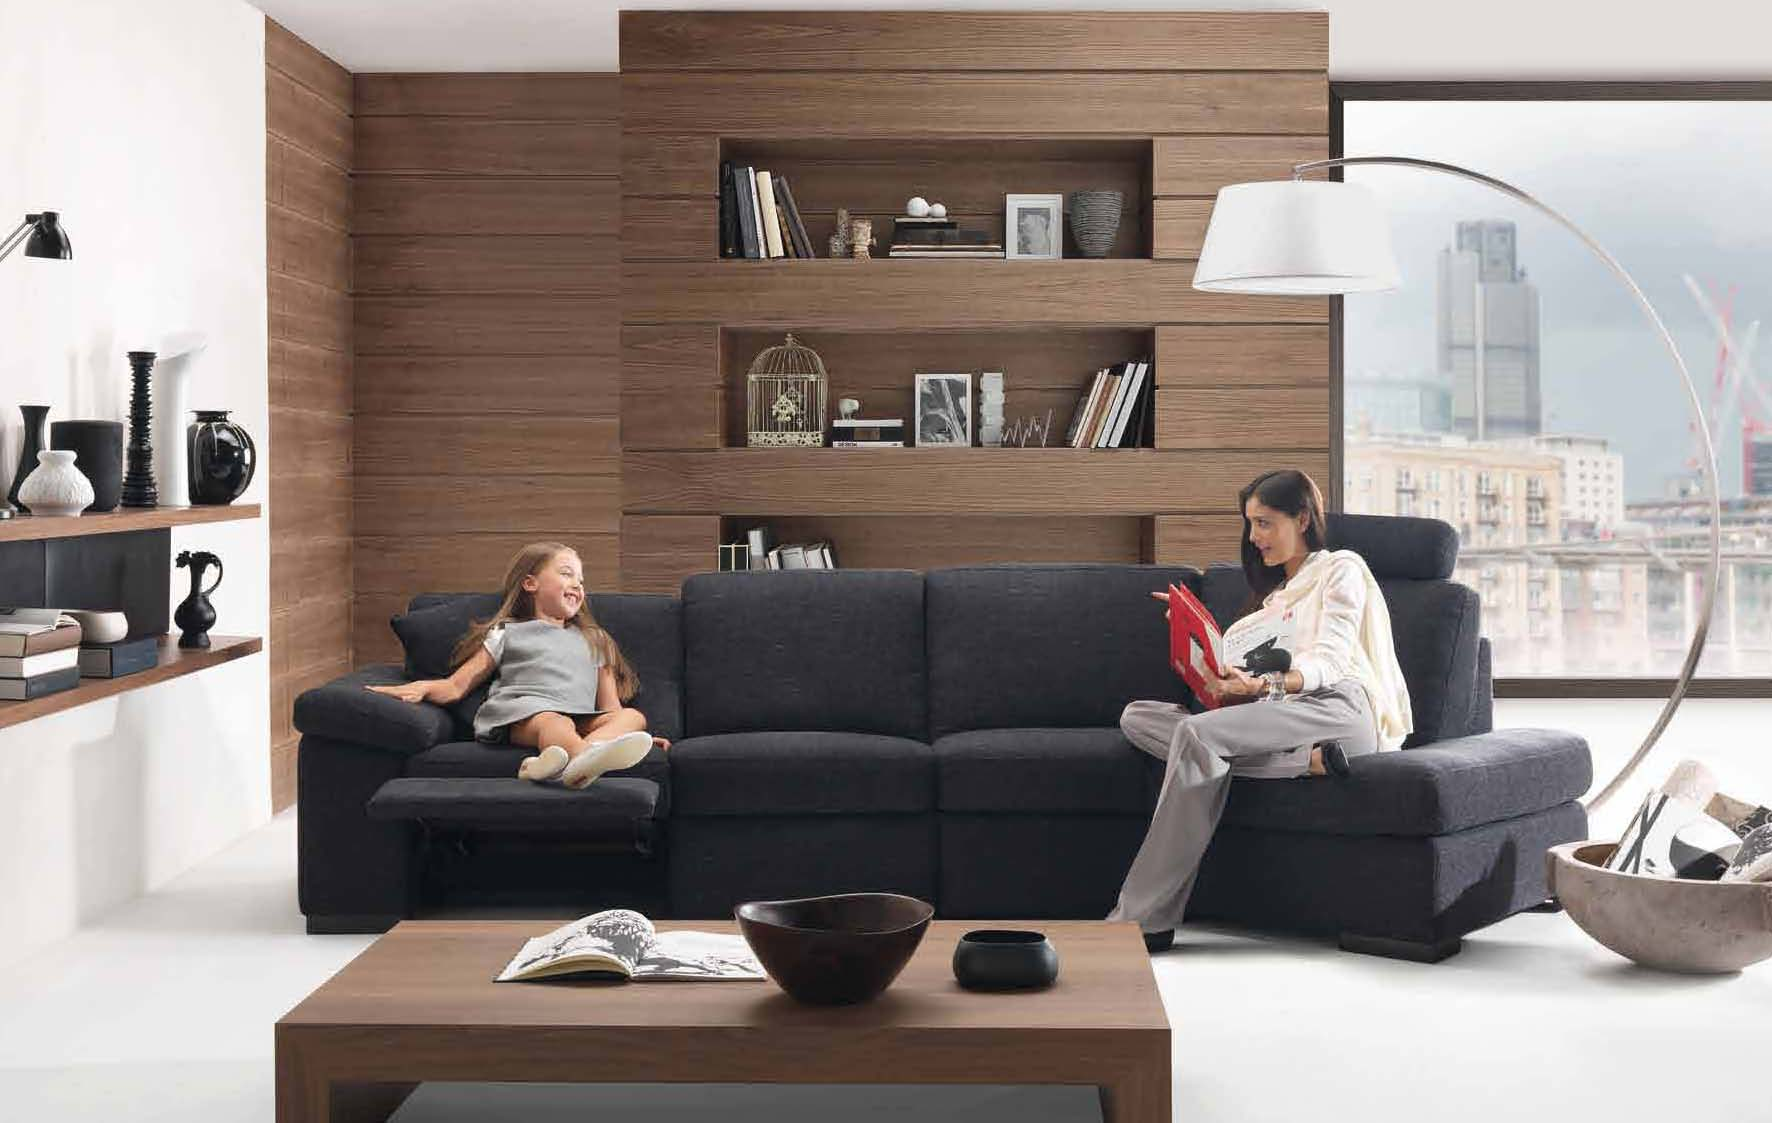 Living room styles 2010 by natuzzi for Interior design styles wood